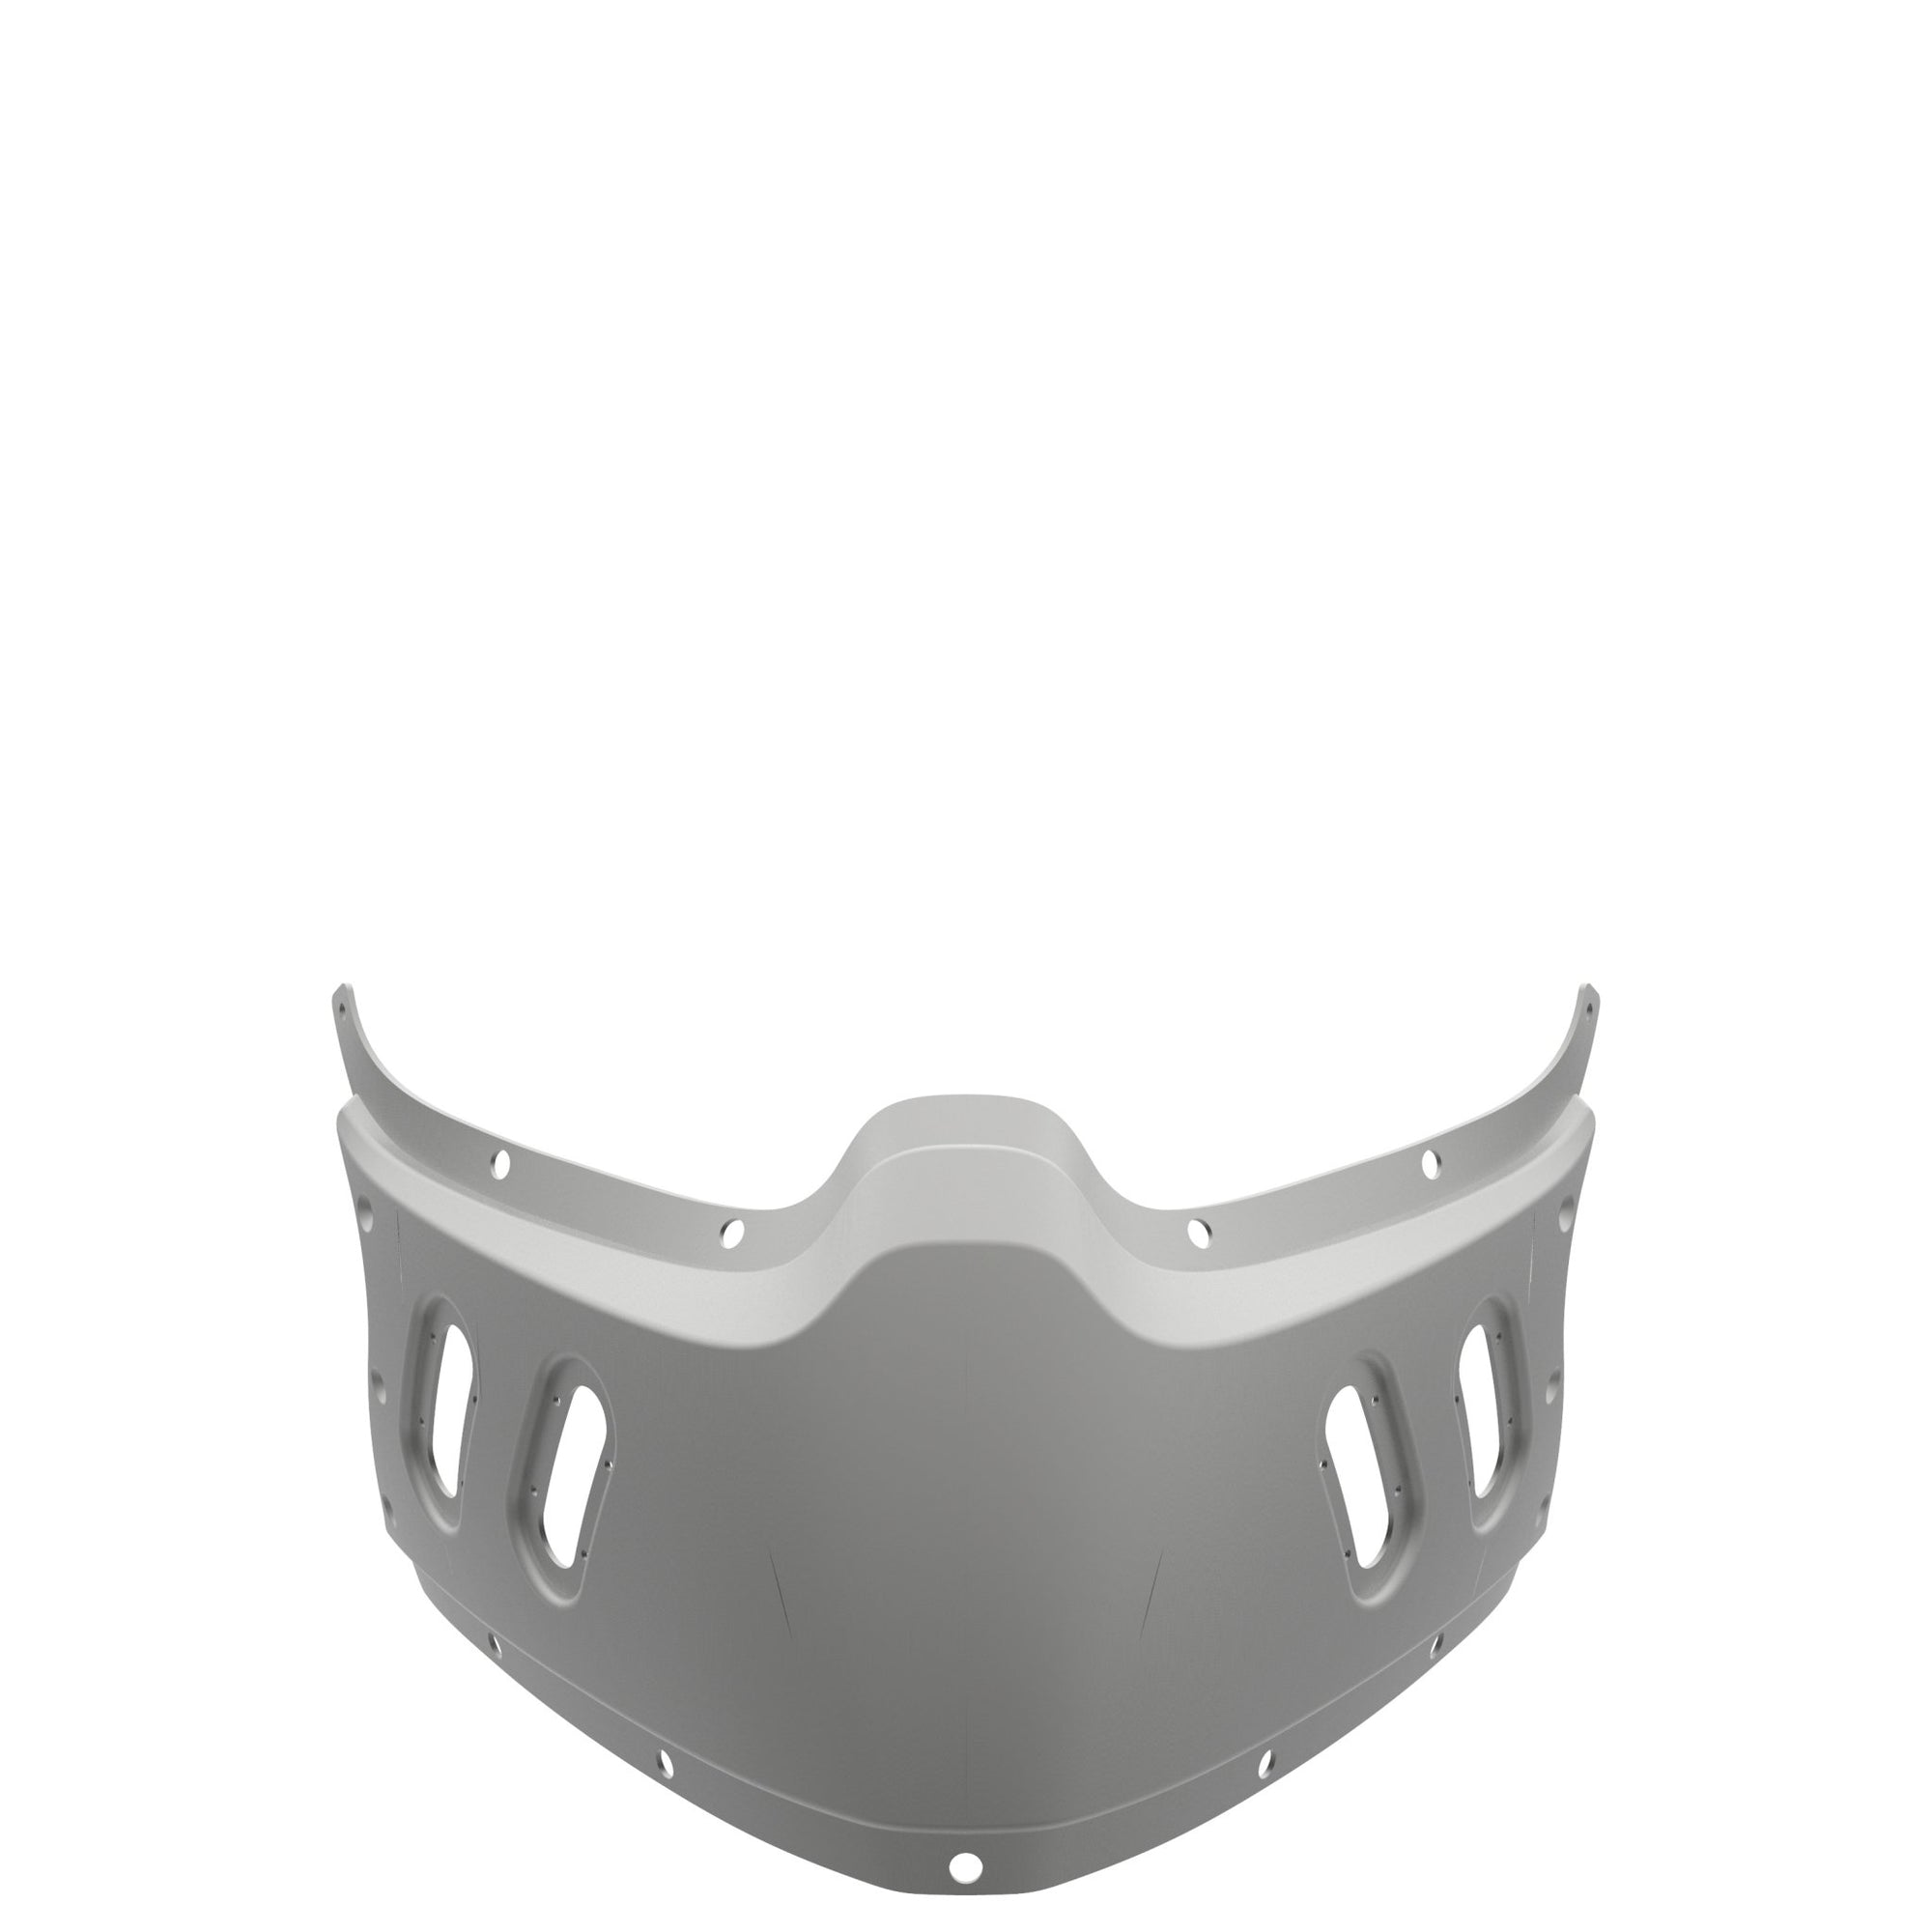 Qwart - Qwart Carbon Mask chin guard cover Accessory Kit for Phoenix Standard and Slick Helmets - Helmet Accessories - Salt Flats Clothing